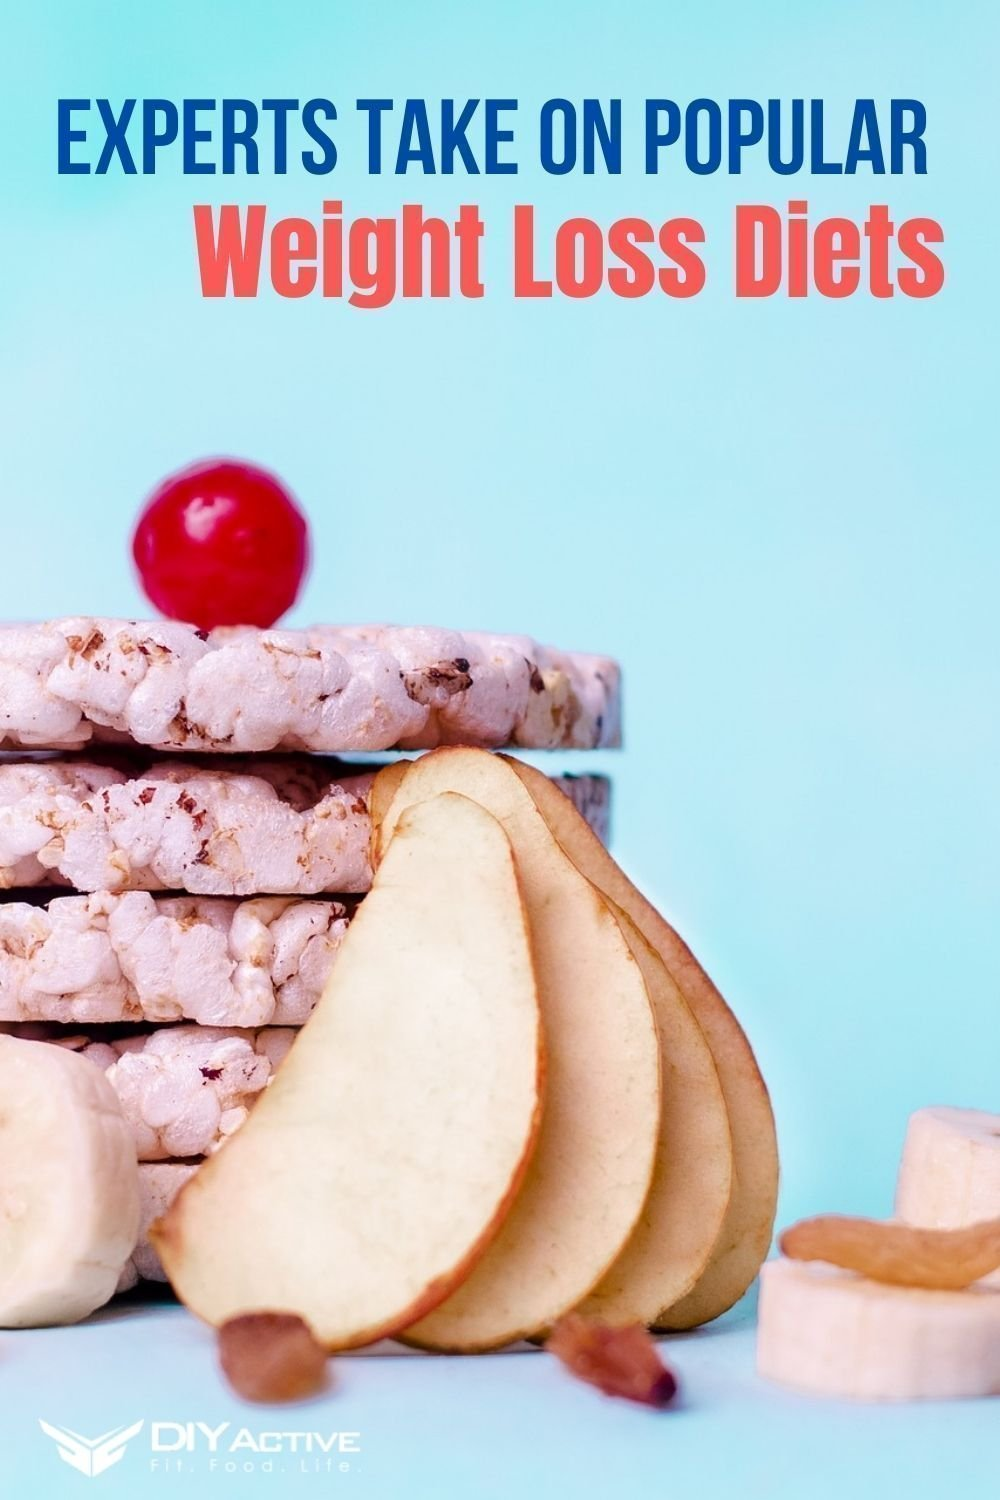 Experts Take On Popular Weight Loss Diets